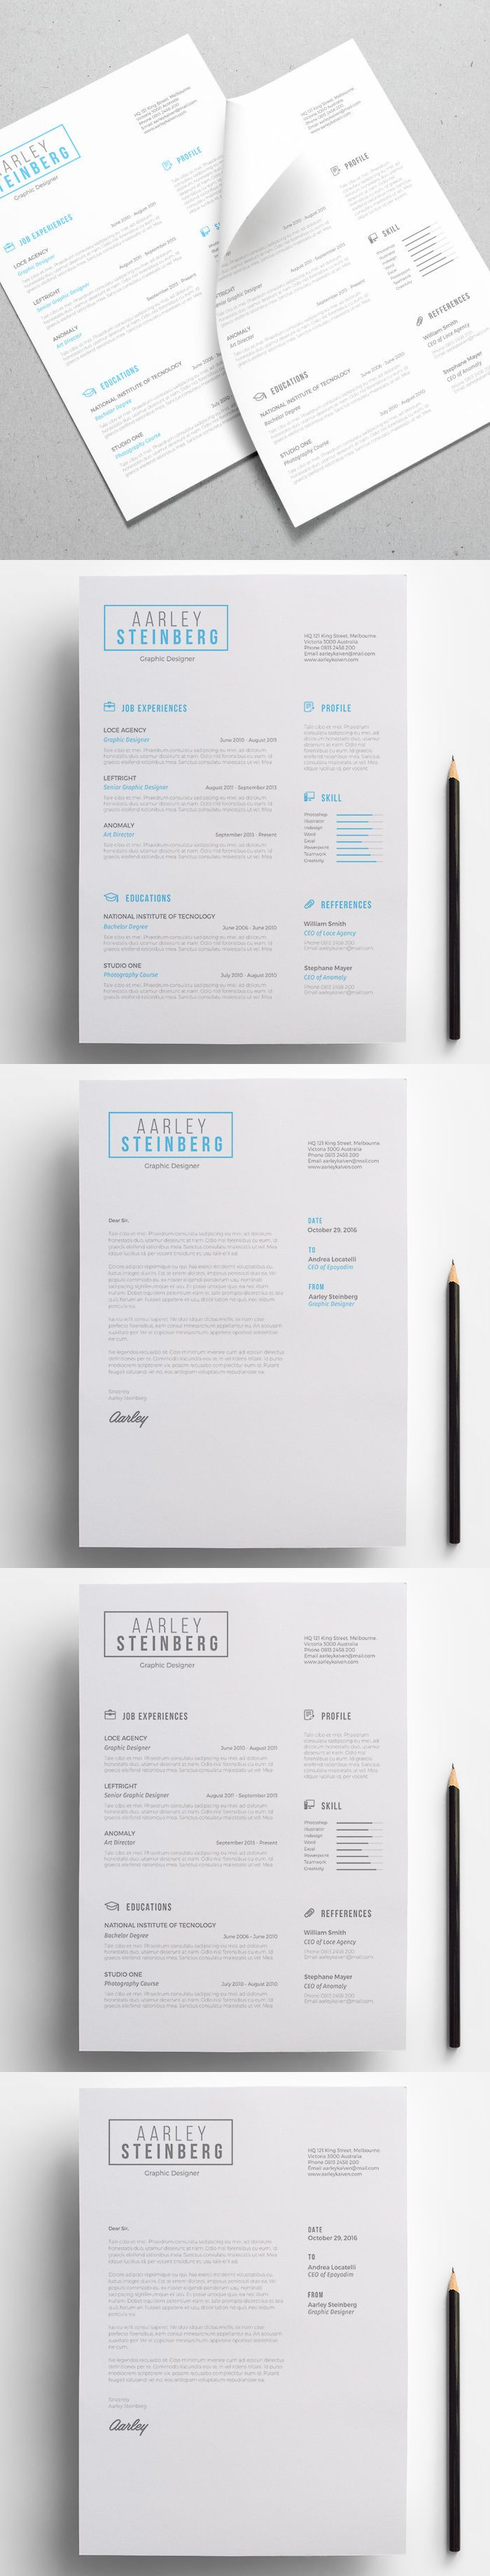 Top Best Simple Resume Examples Ideas  Minimal Template